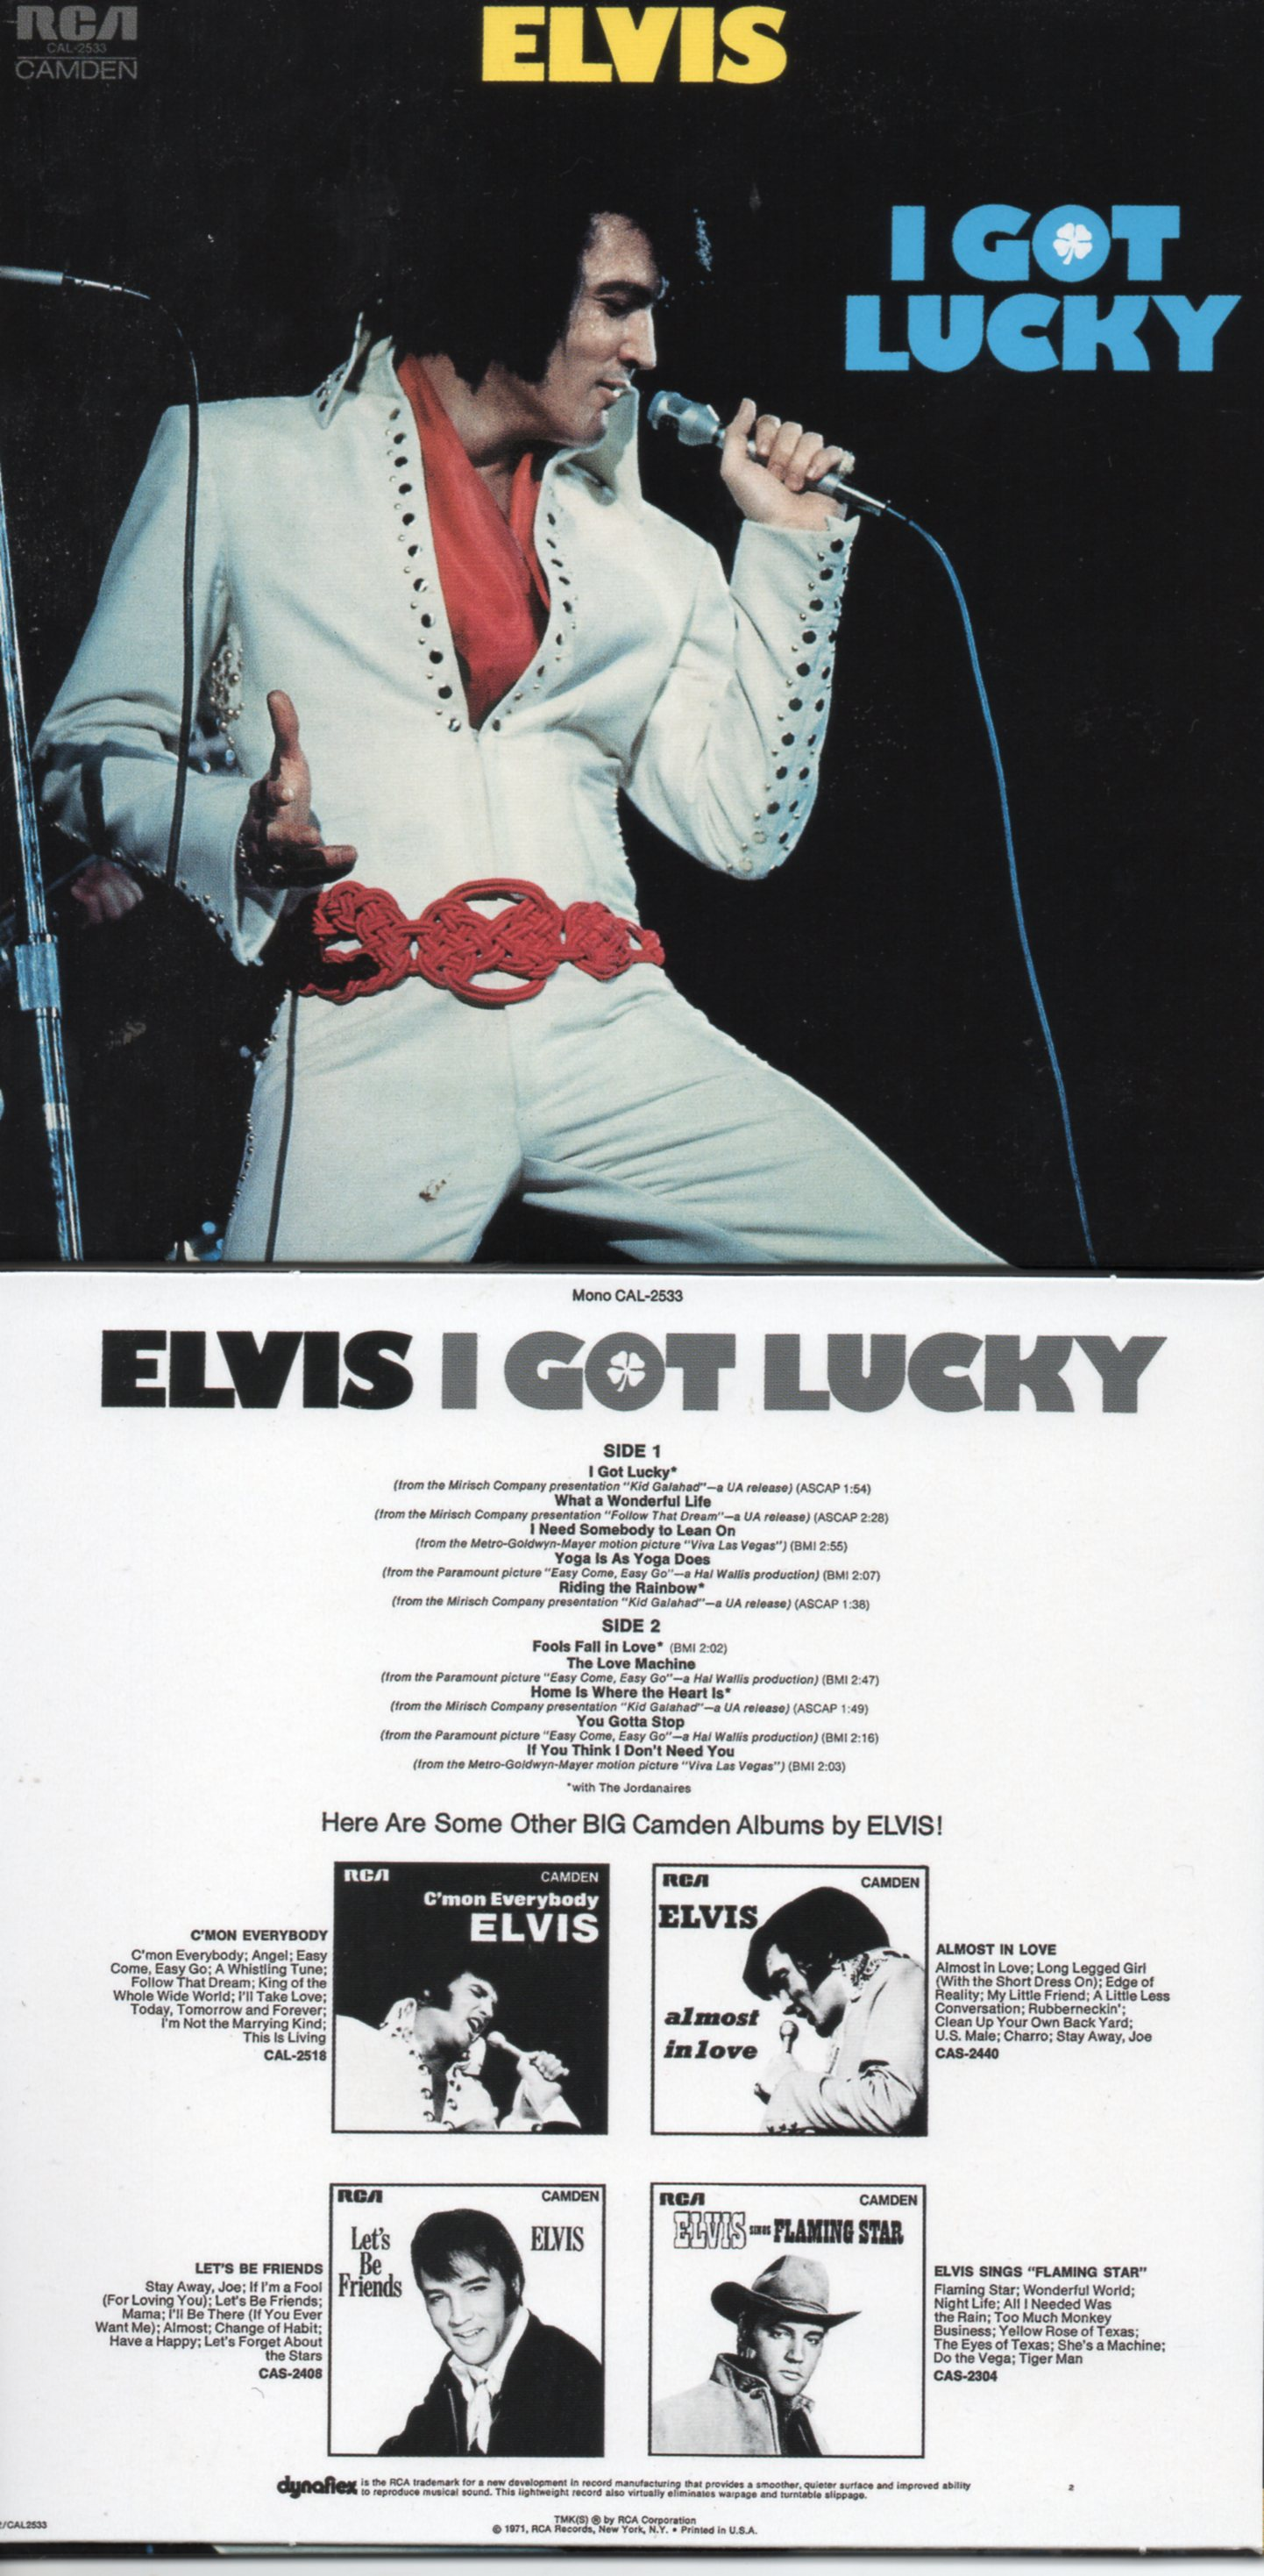 Elvis PRESLEY - I Got Lucky (1971 - Mini Lp Replica -12-track Card Sleeve)